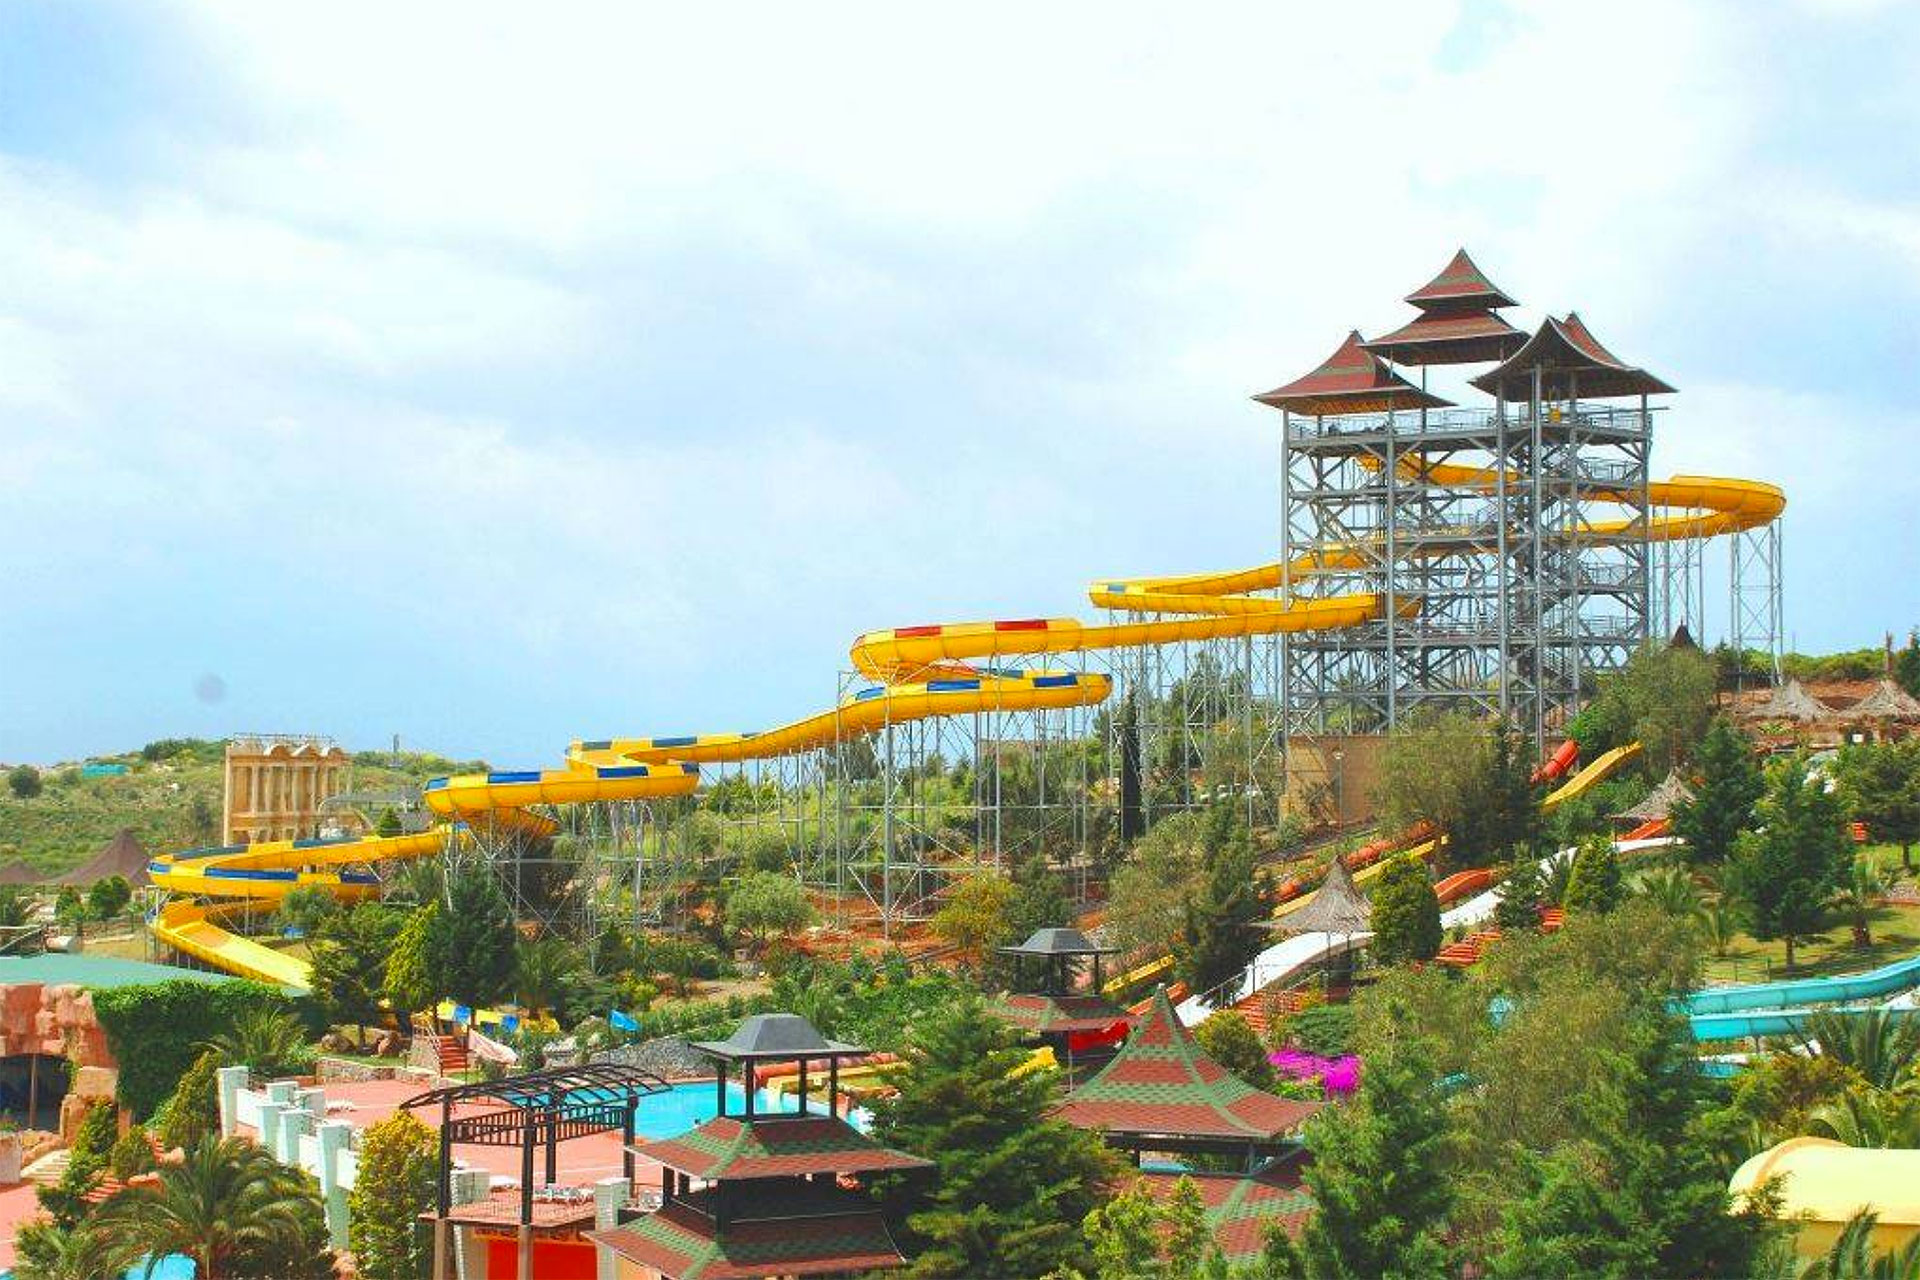 Adaland Water Park in Turkey; Courtesy of Adaland Water Park